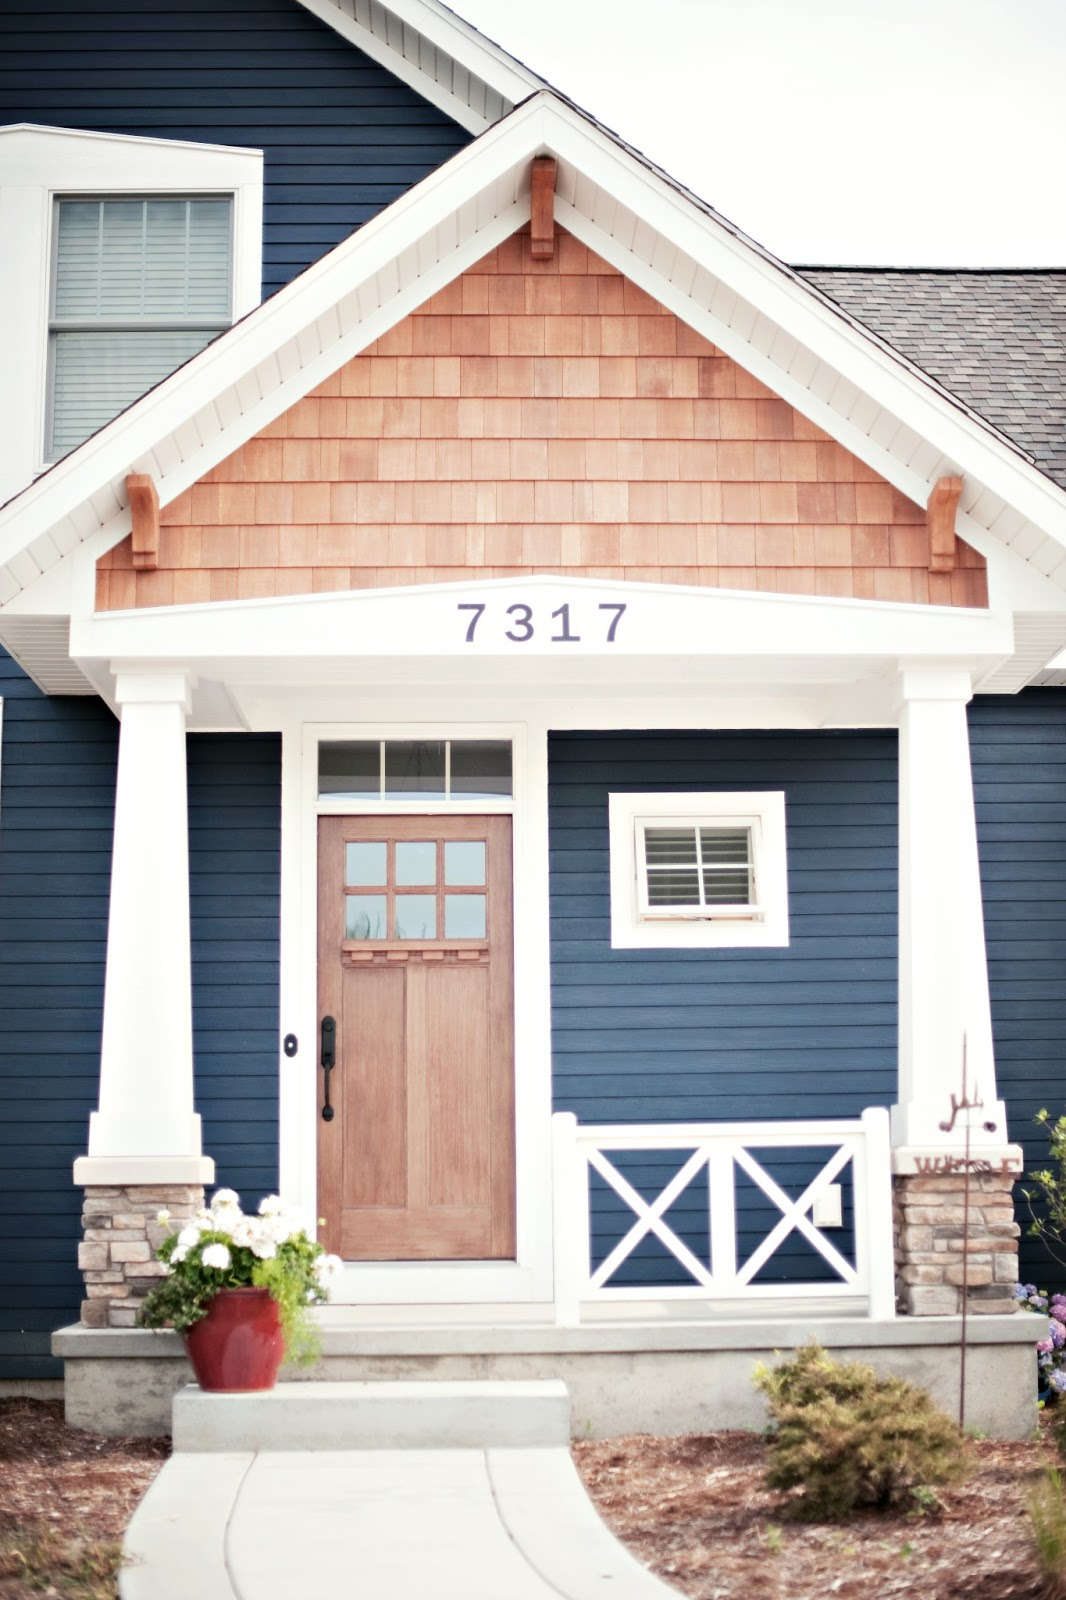 Lisa mende design best navy blue paint colors 8 of my favs for Paint colors house exterior